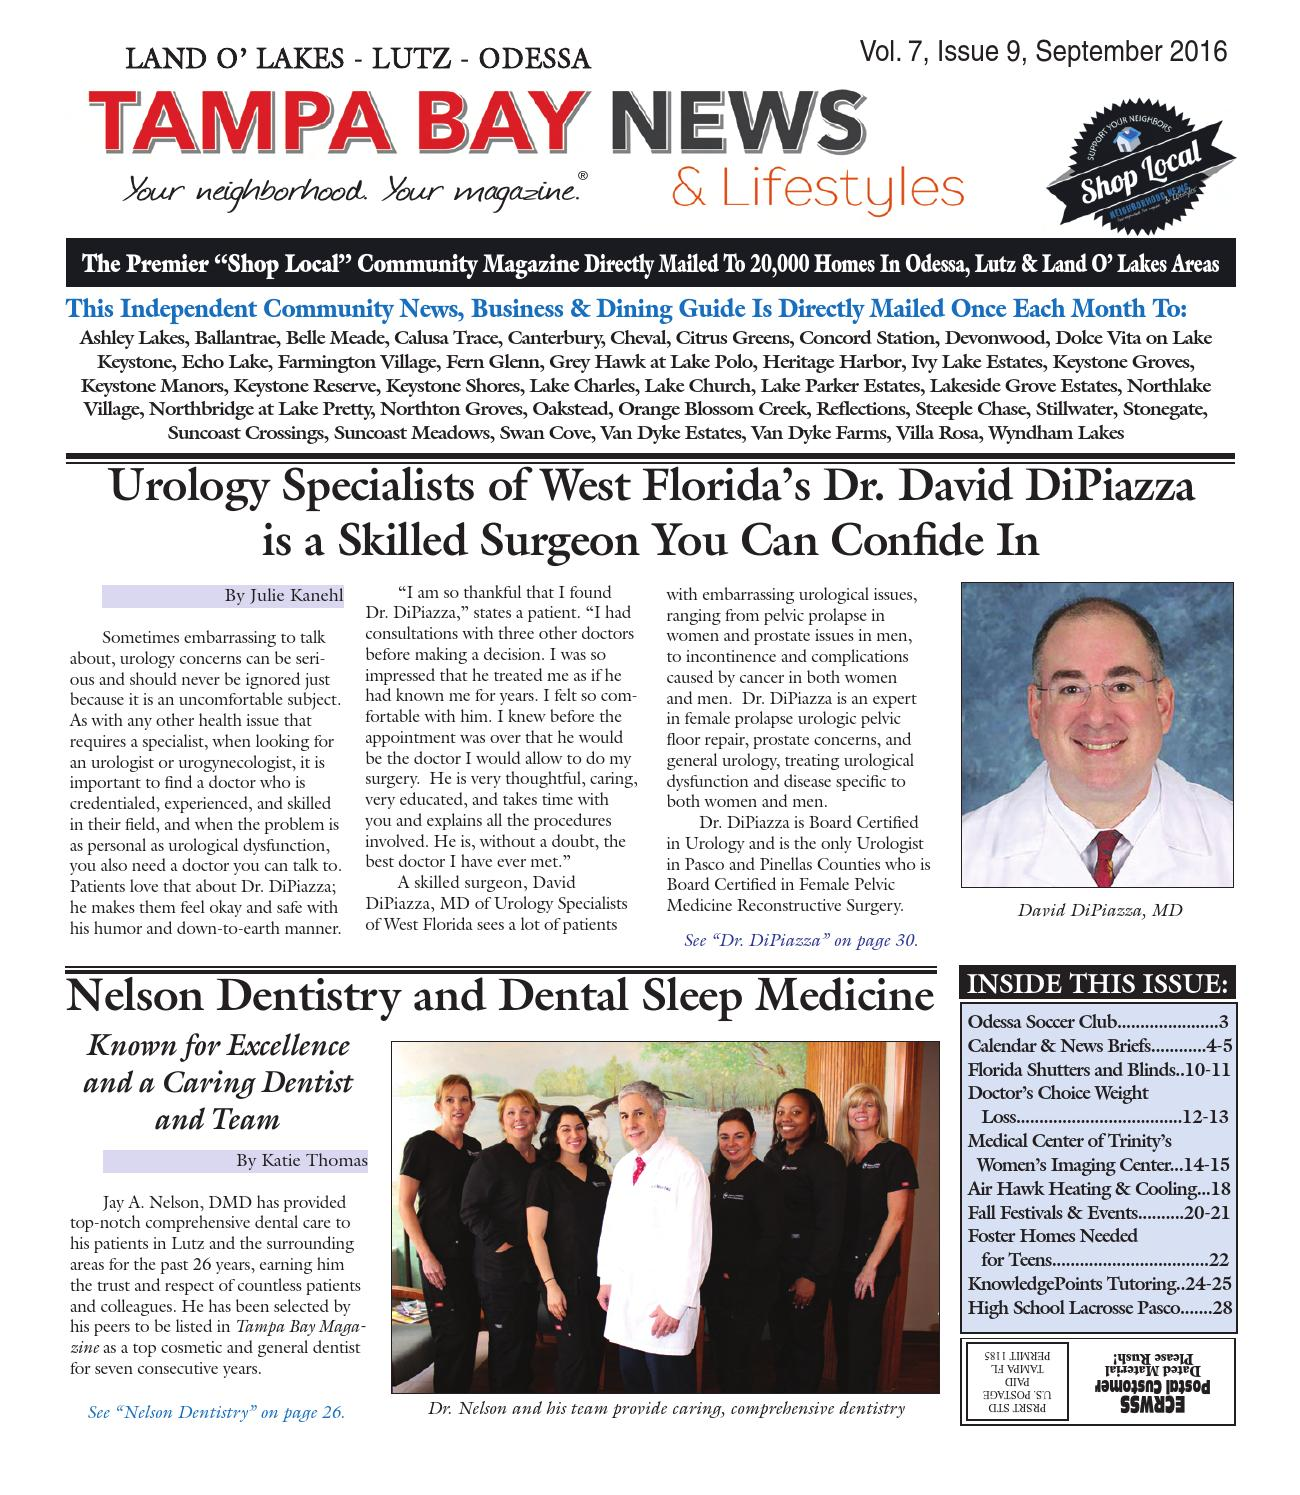 Lutz Land O Lakes Odessa Vol 7 Issue 9 September 2016 By Tampa Bay News Lifestyles Magazine Issuu